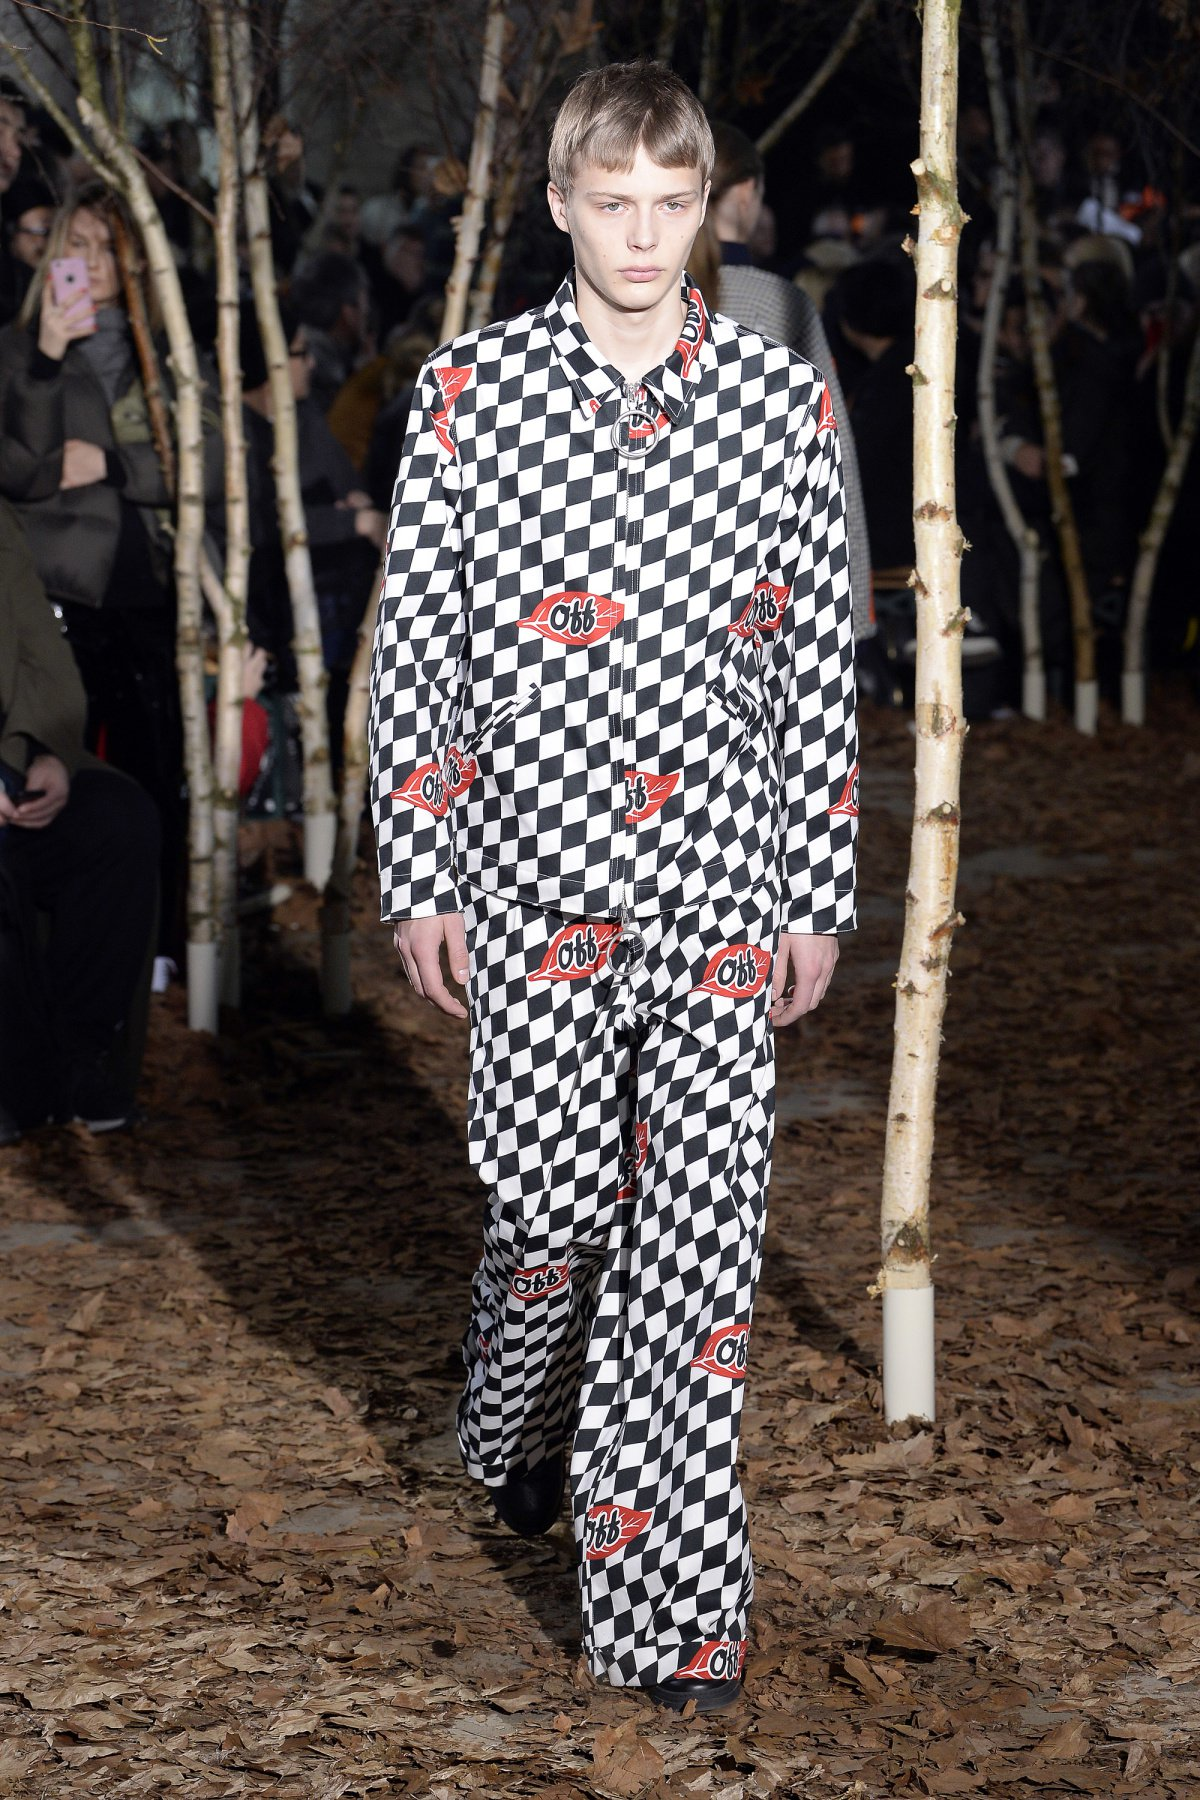 off_white_look_20_2017_aw_mens.jpeg